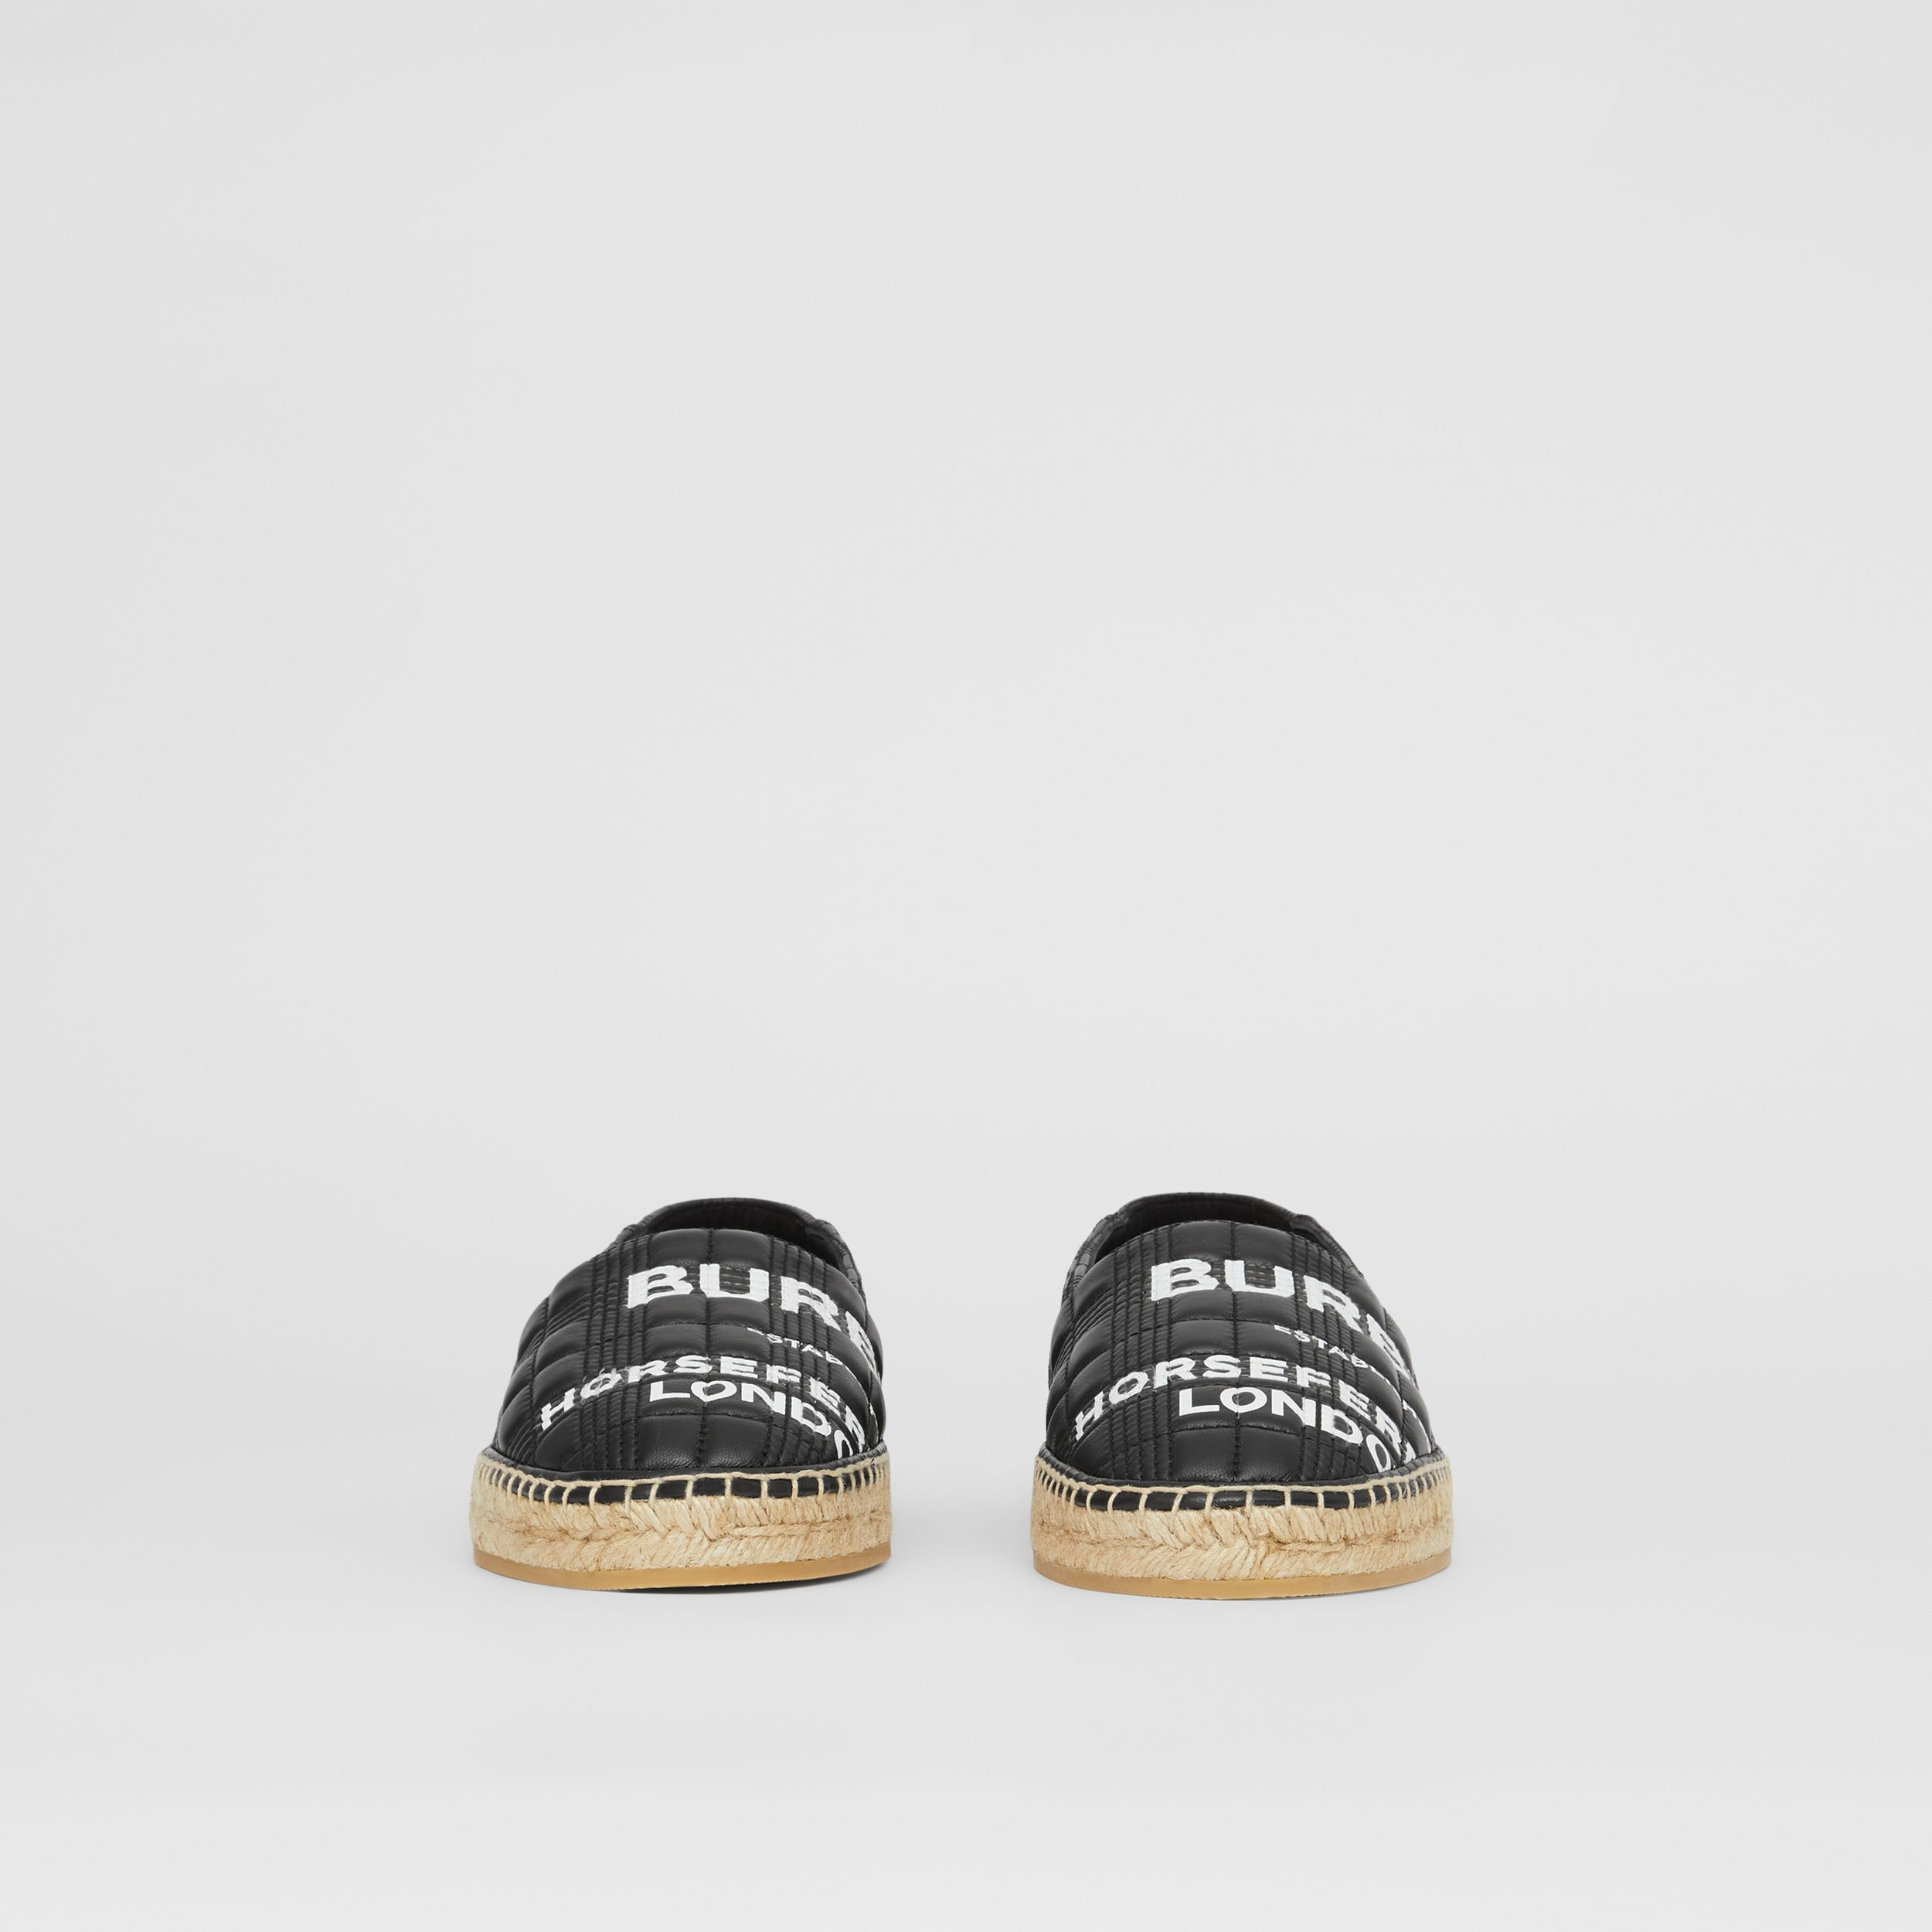 Horseferry Print Quilted Leather Espadrilles in Black - Men | Burberry Australia - 4